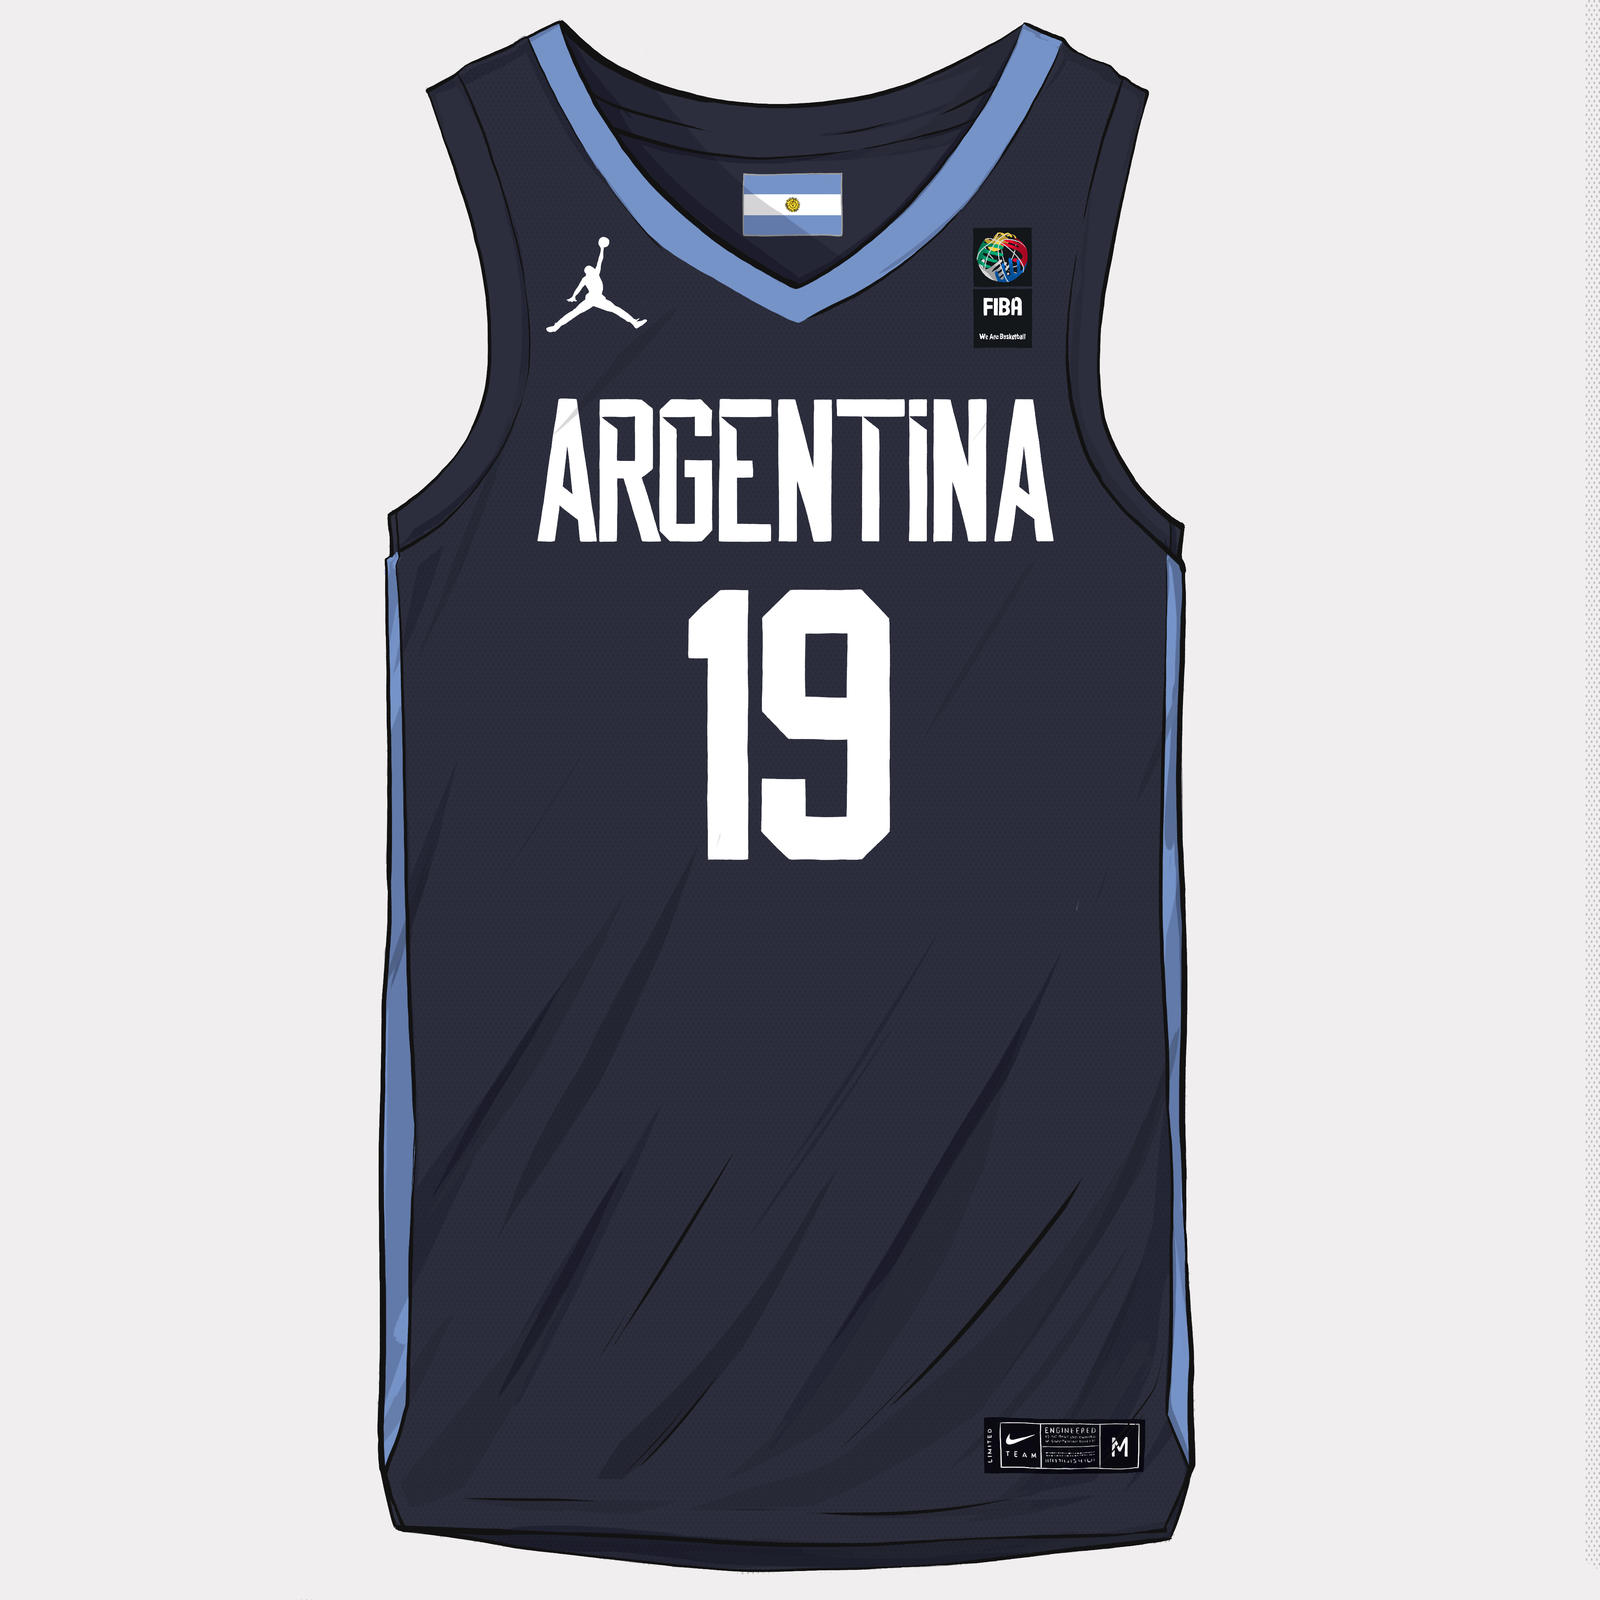 FIBA World Cup 2019 Uniforms 15